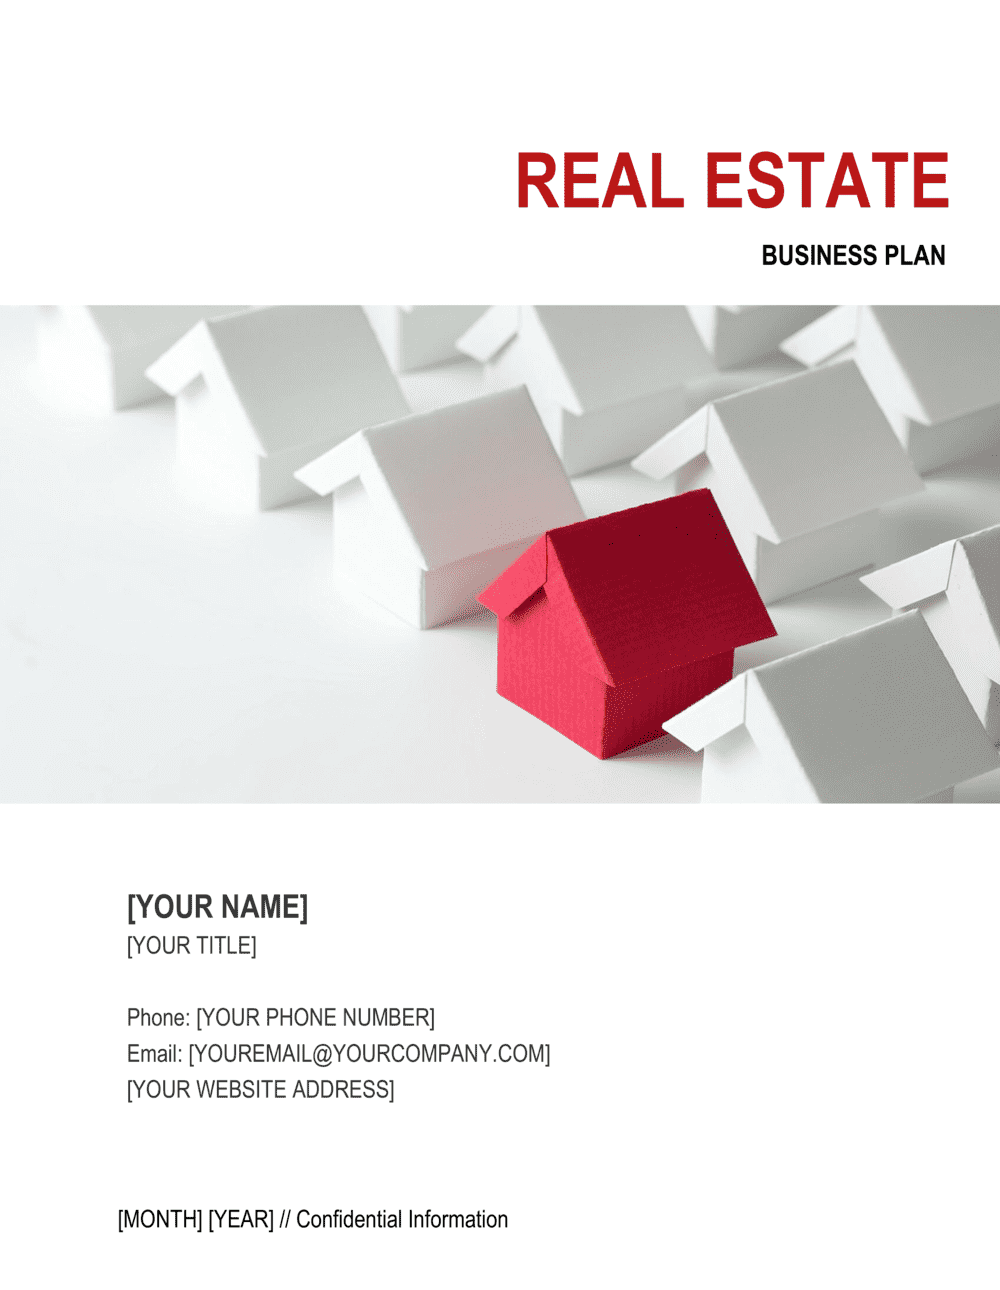 Business-in-a-Box's Real Estate Management Business Plan 2 Template